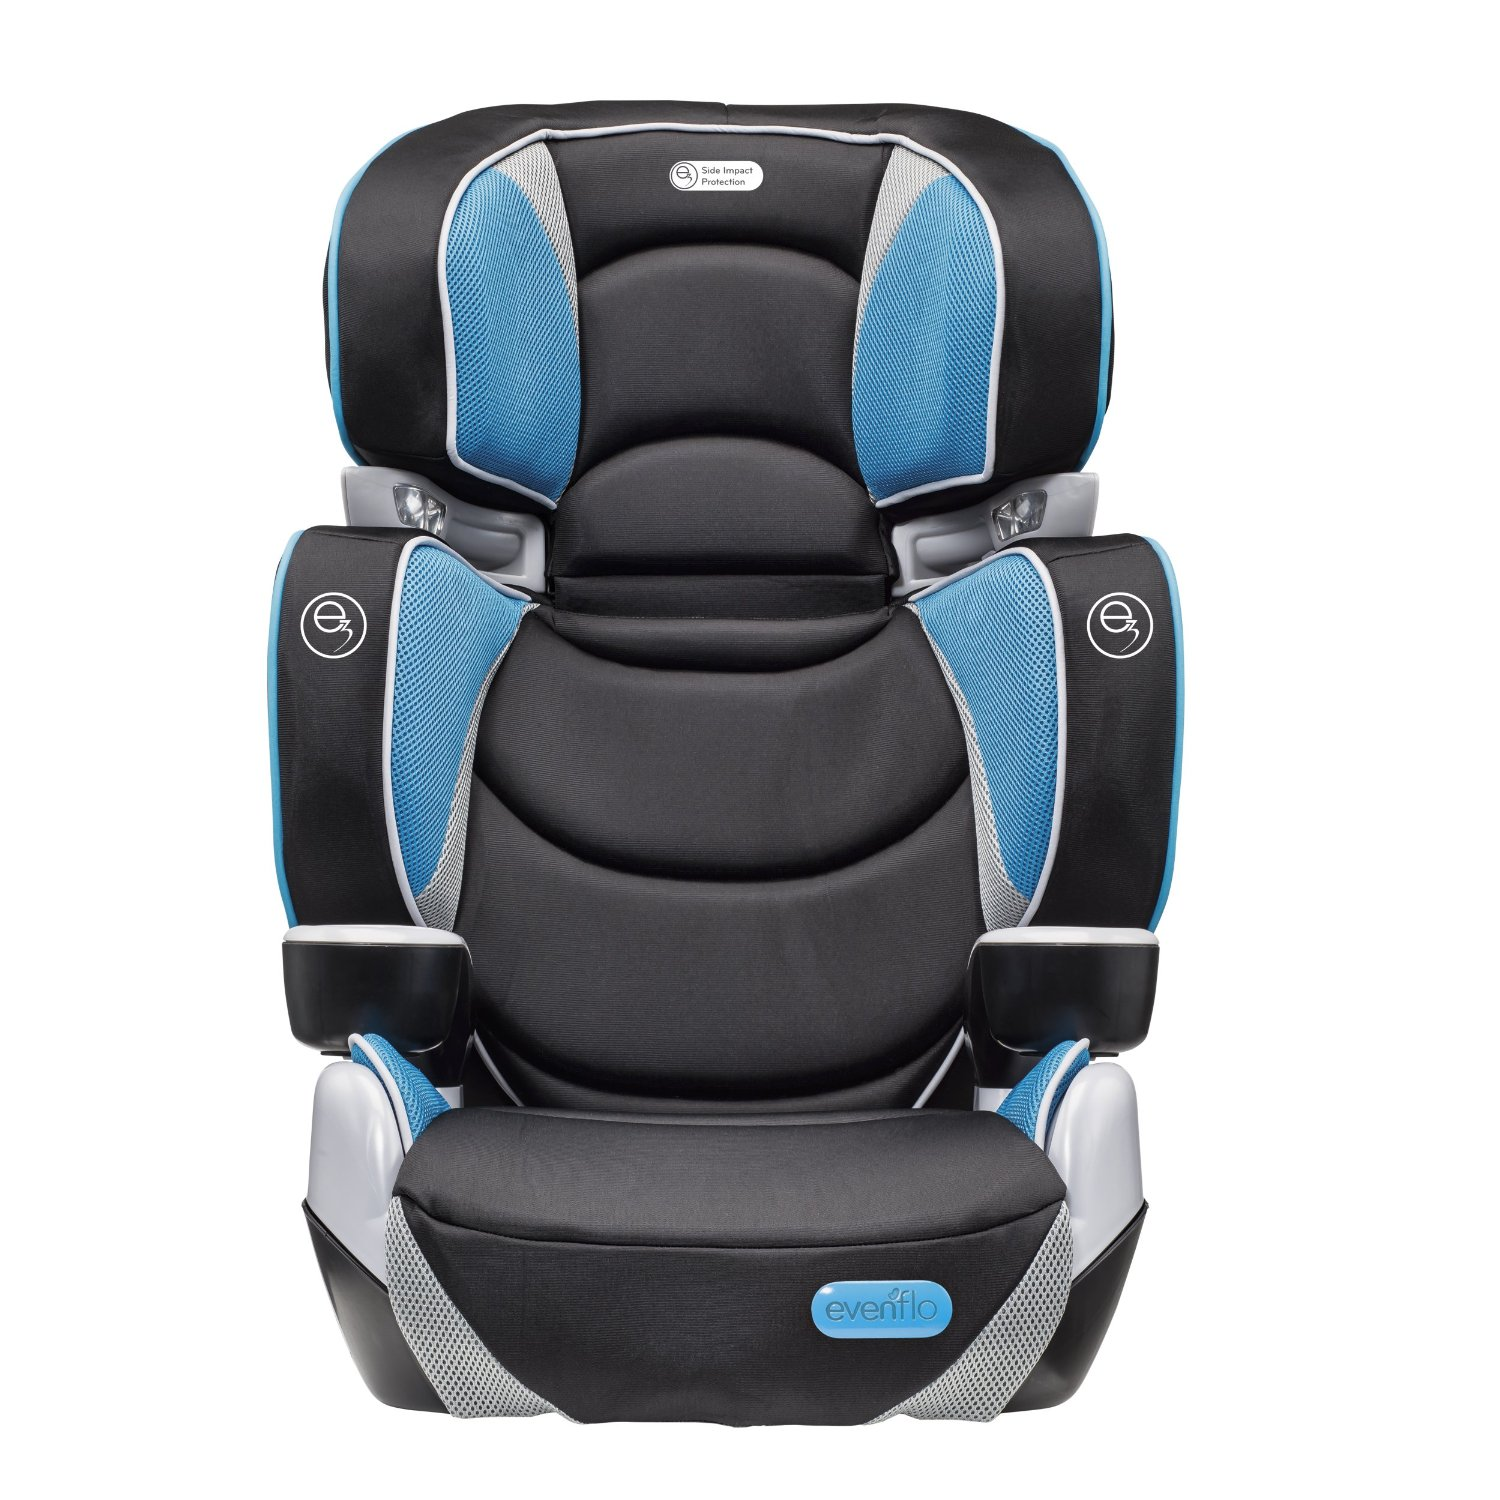 evenflo rightfit booster seat vs graco affix youth booster seat how to give your child the best